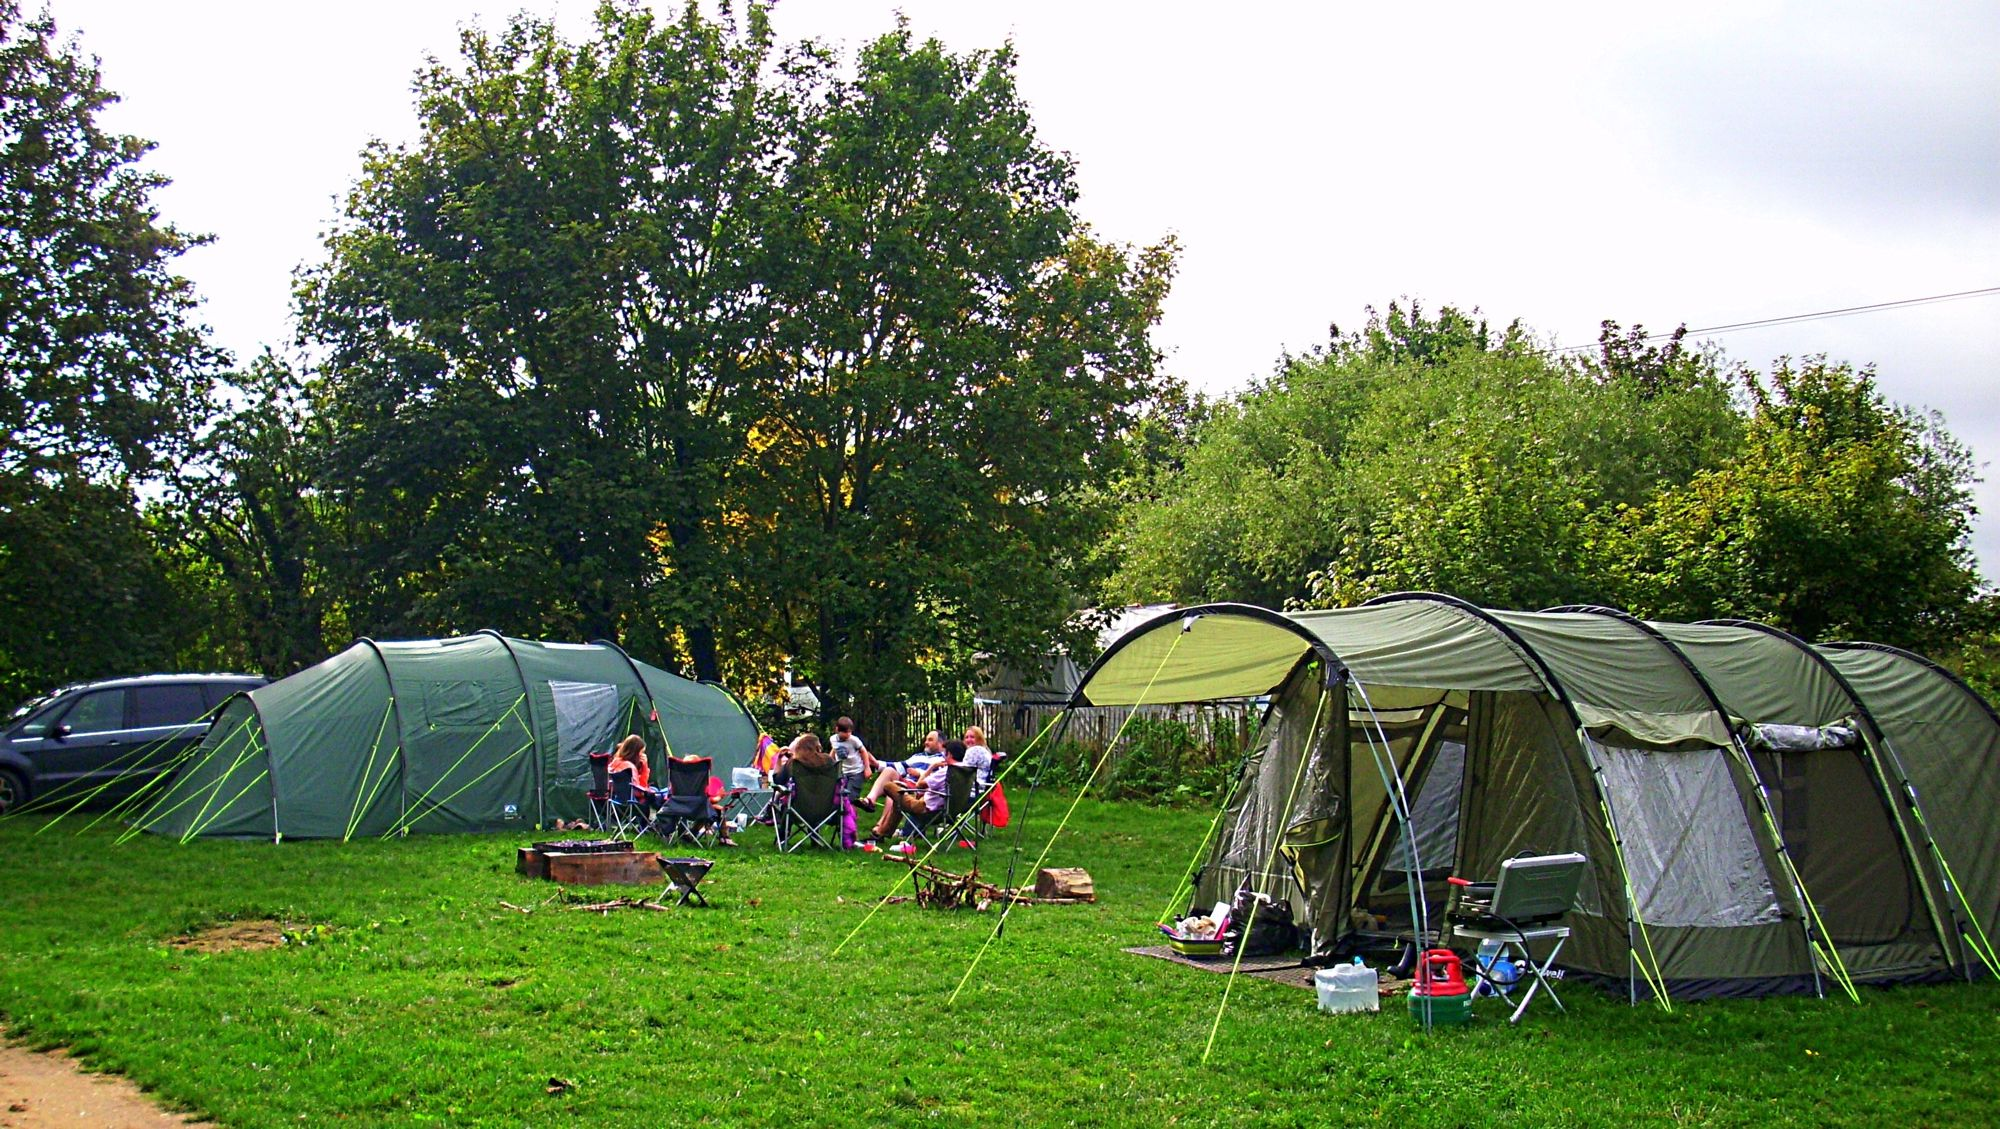 Farm camping at its eco-friendly best – in the heart of the Fens.